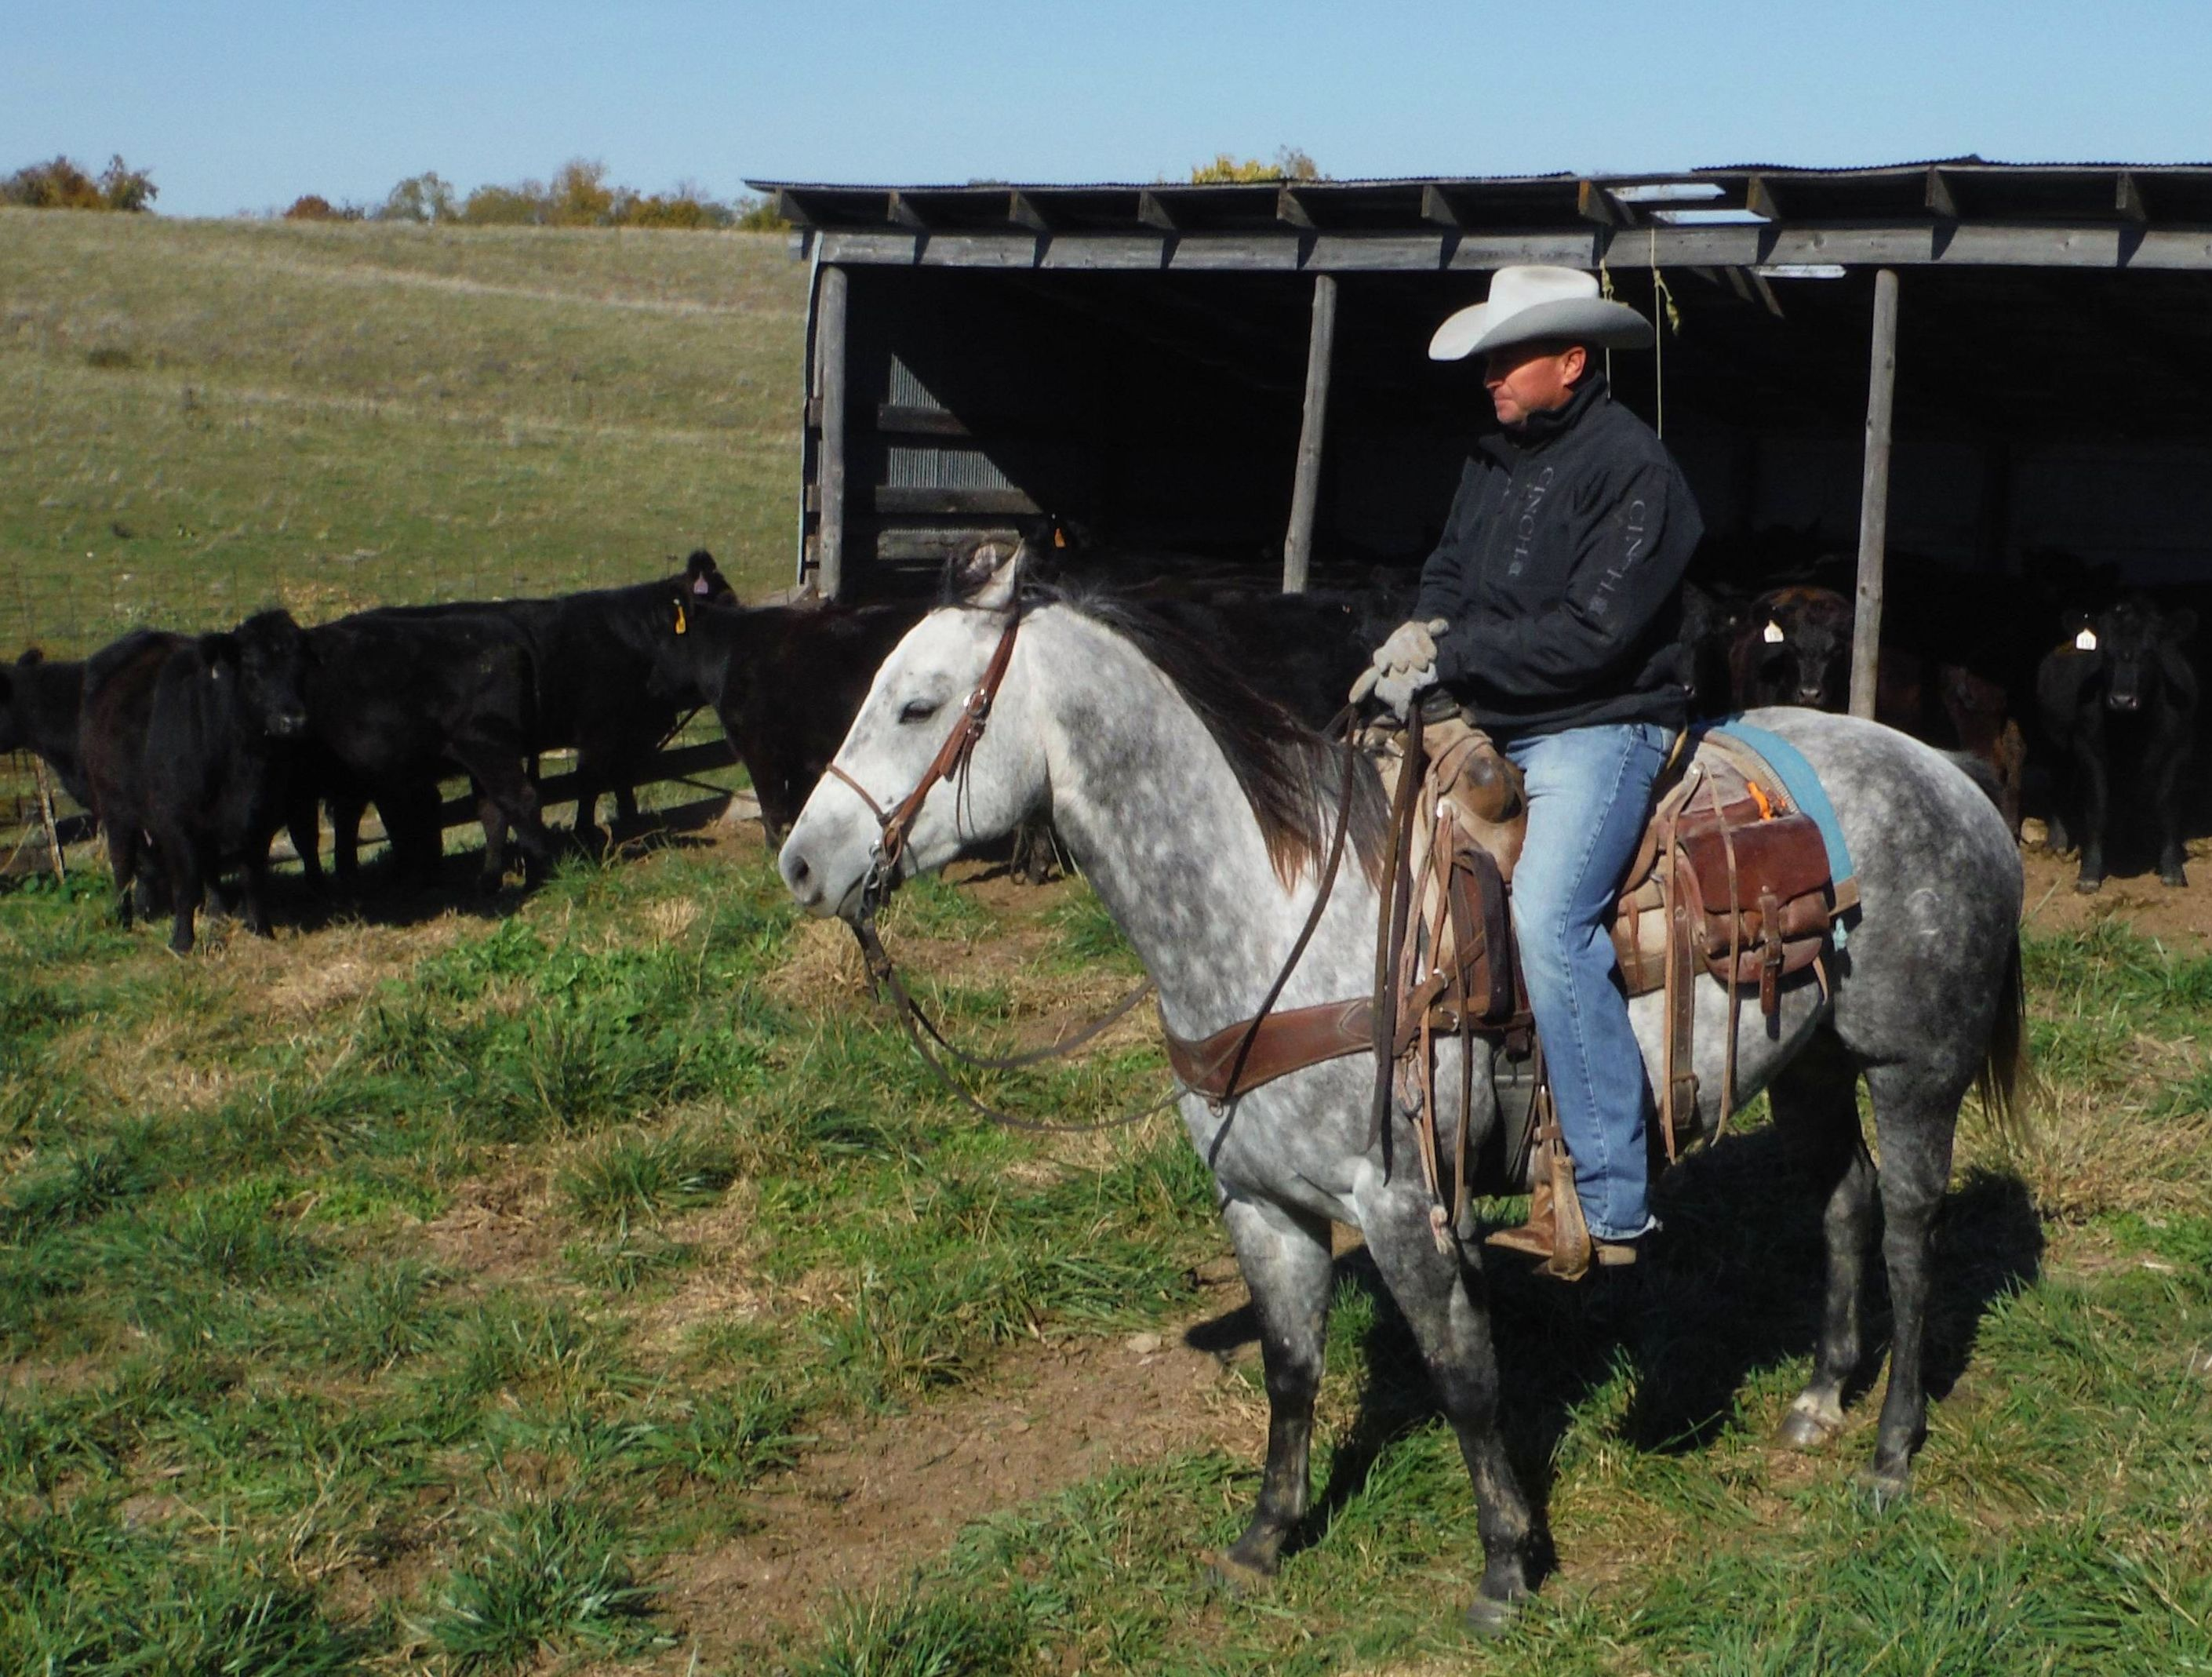 Gray Ranch Horse Gelding for Sale - For more information click on image or see ad # 31689 on www.RanchWorldAds.com